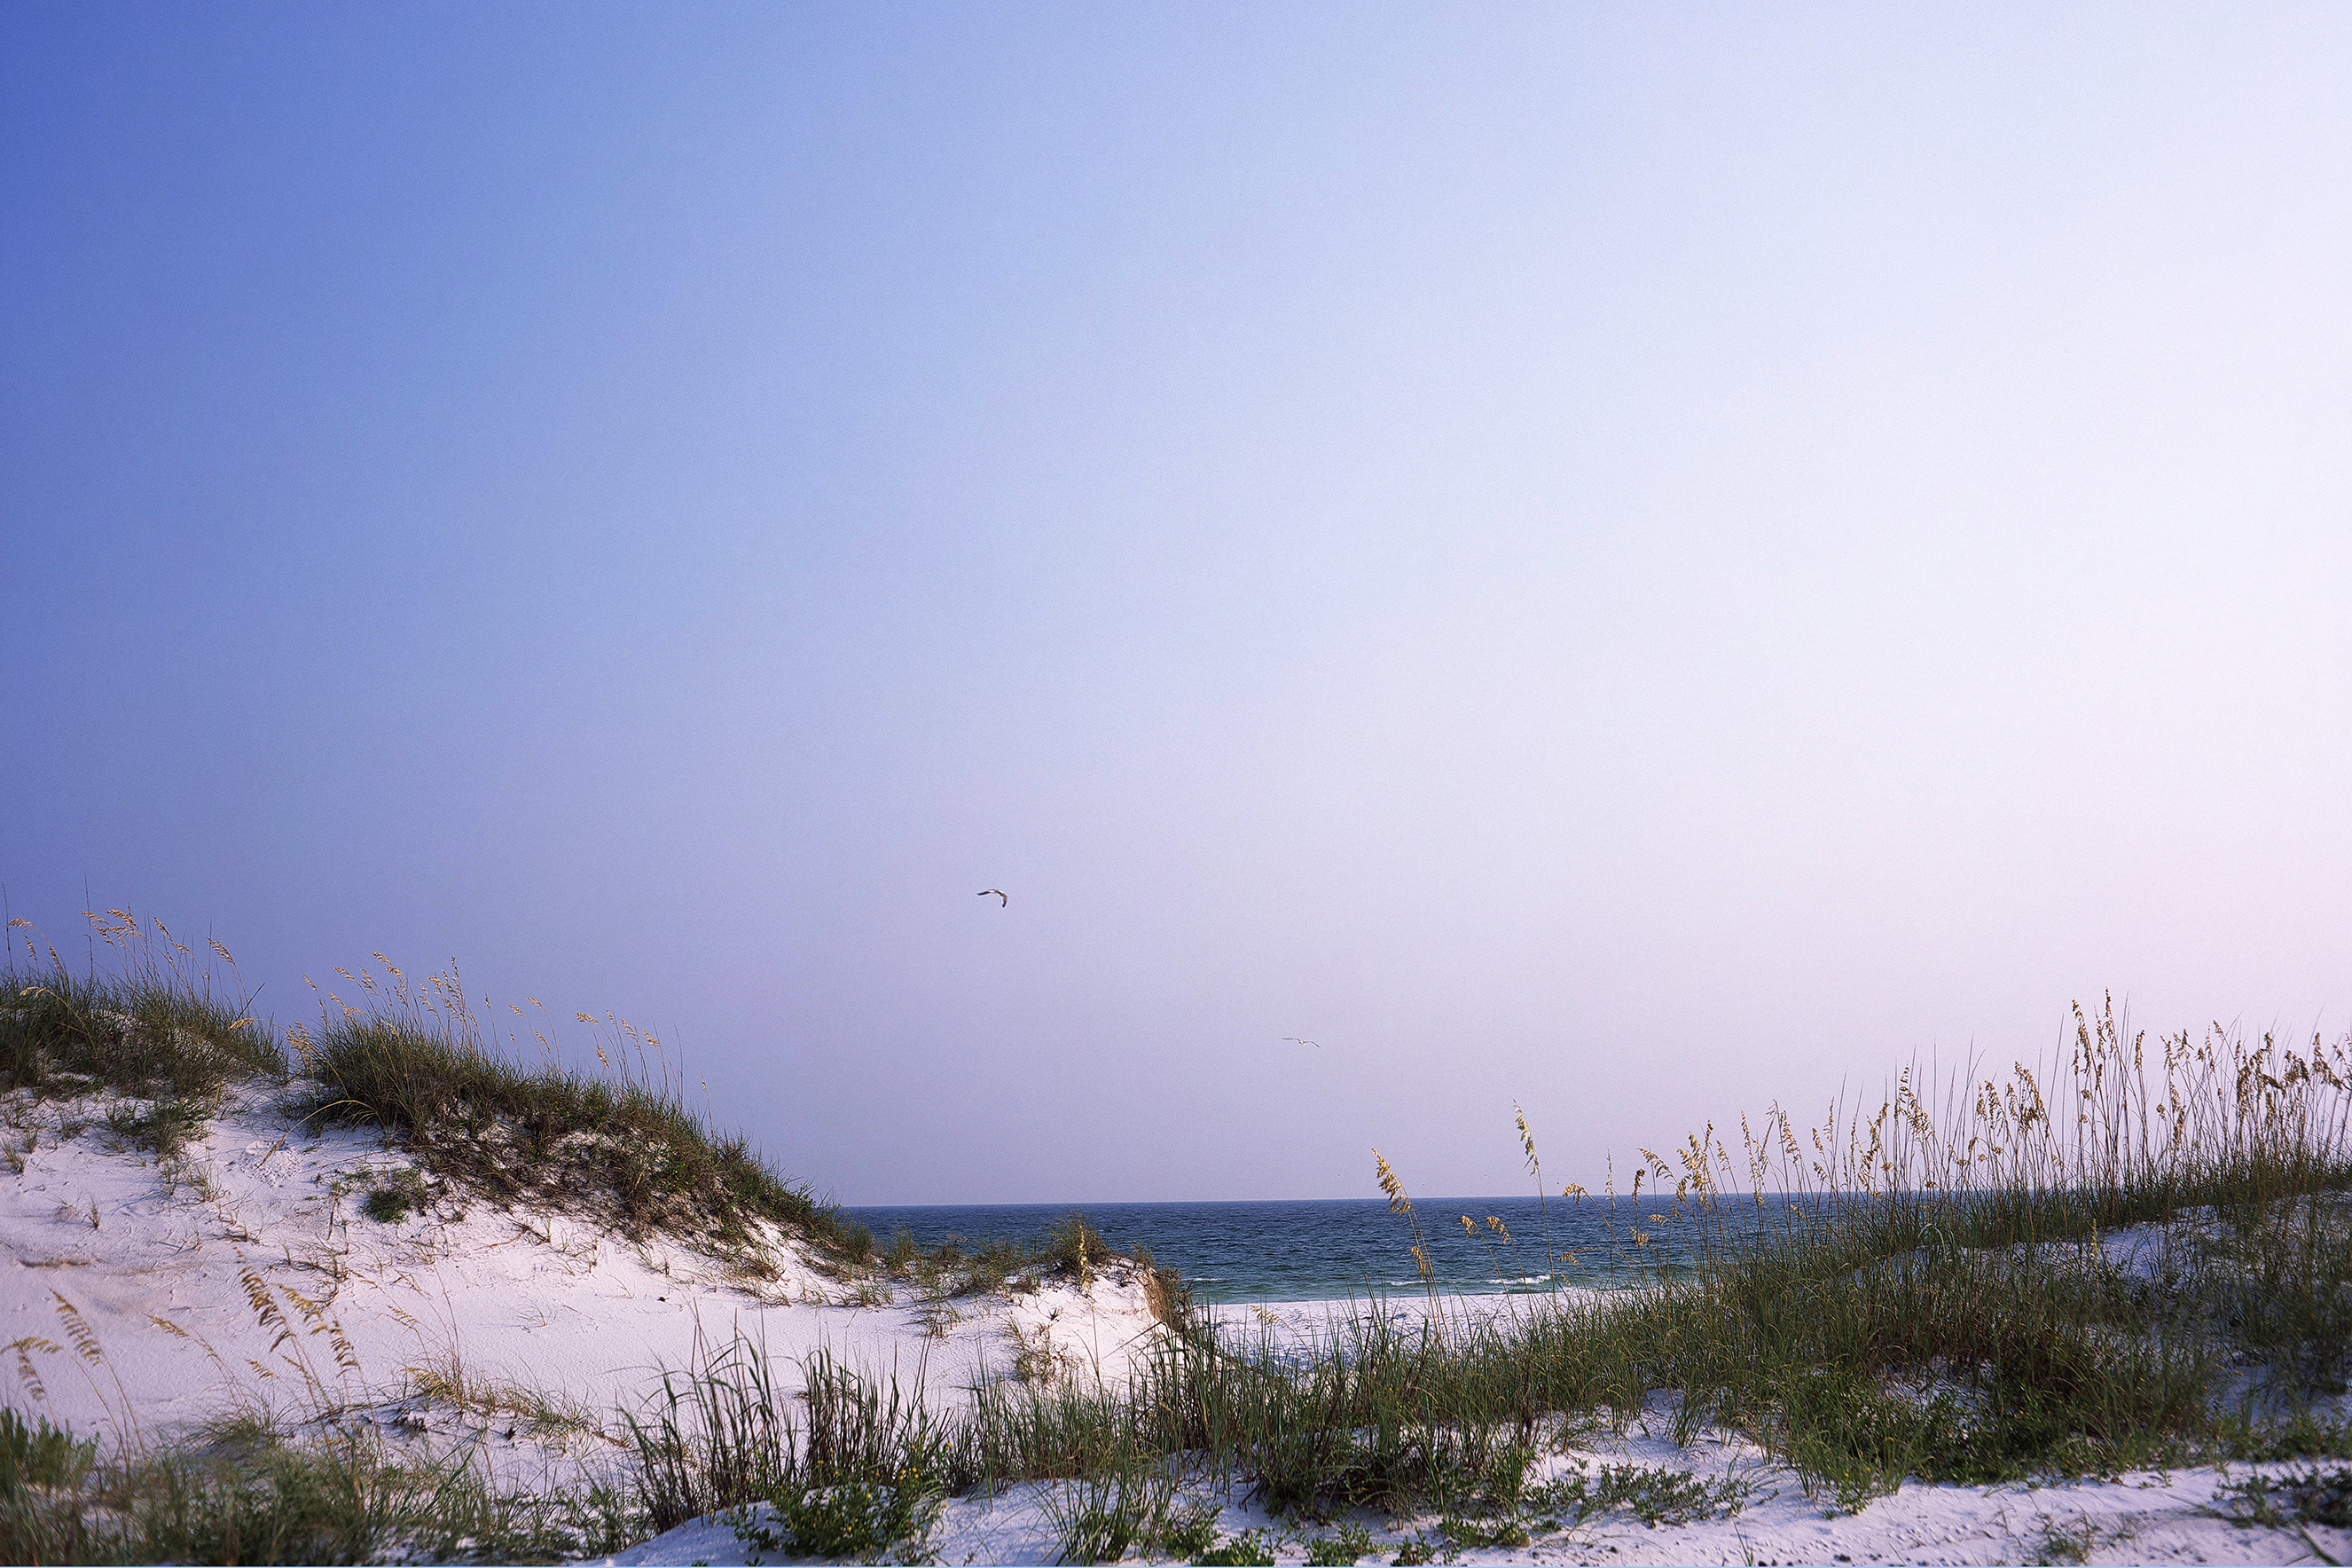 Dunes and vegetation on a Santa Rosa Island Florida beach. The Gulf of Mexico is in the background.